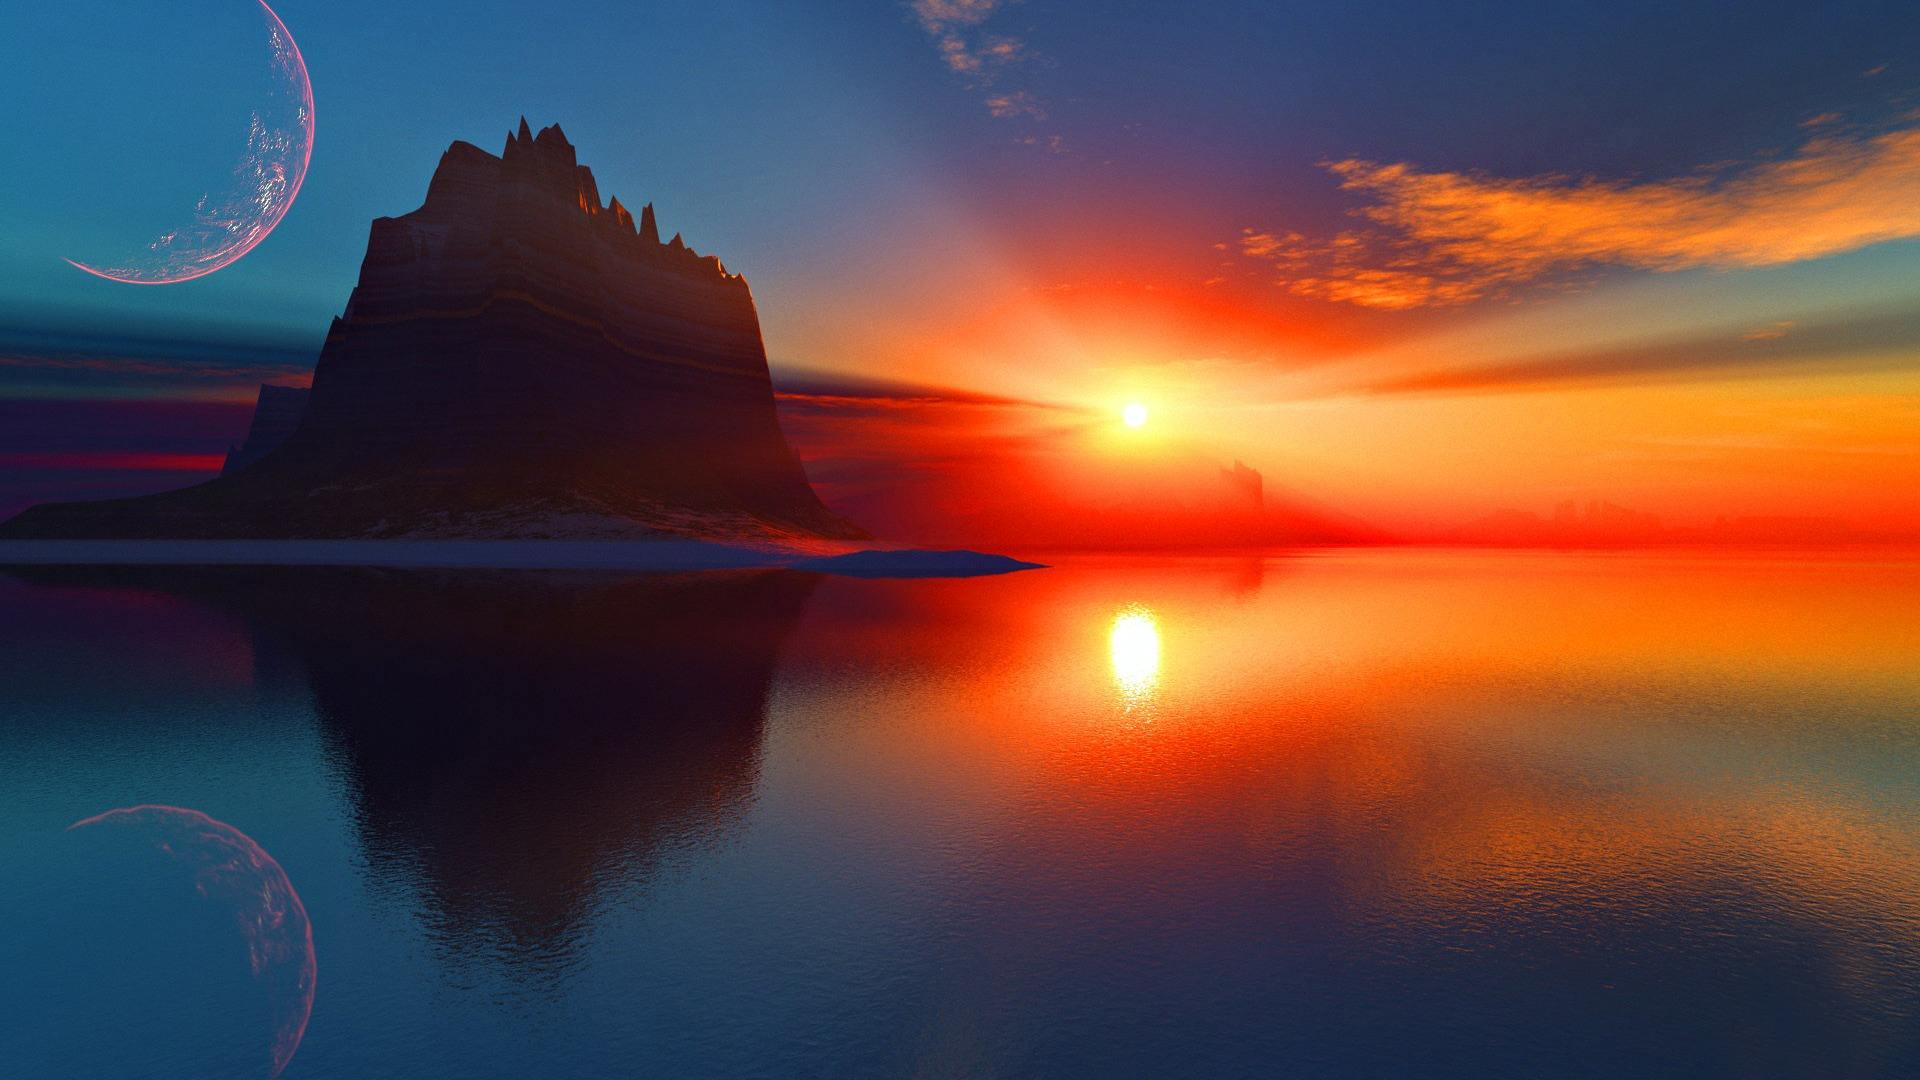 Fantasy Sunset Wallpaper High Definition High Quality Widescreen